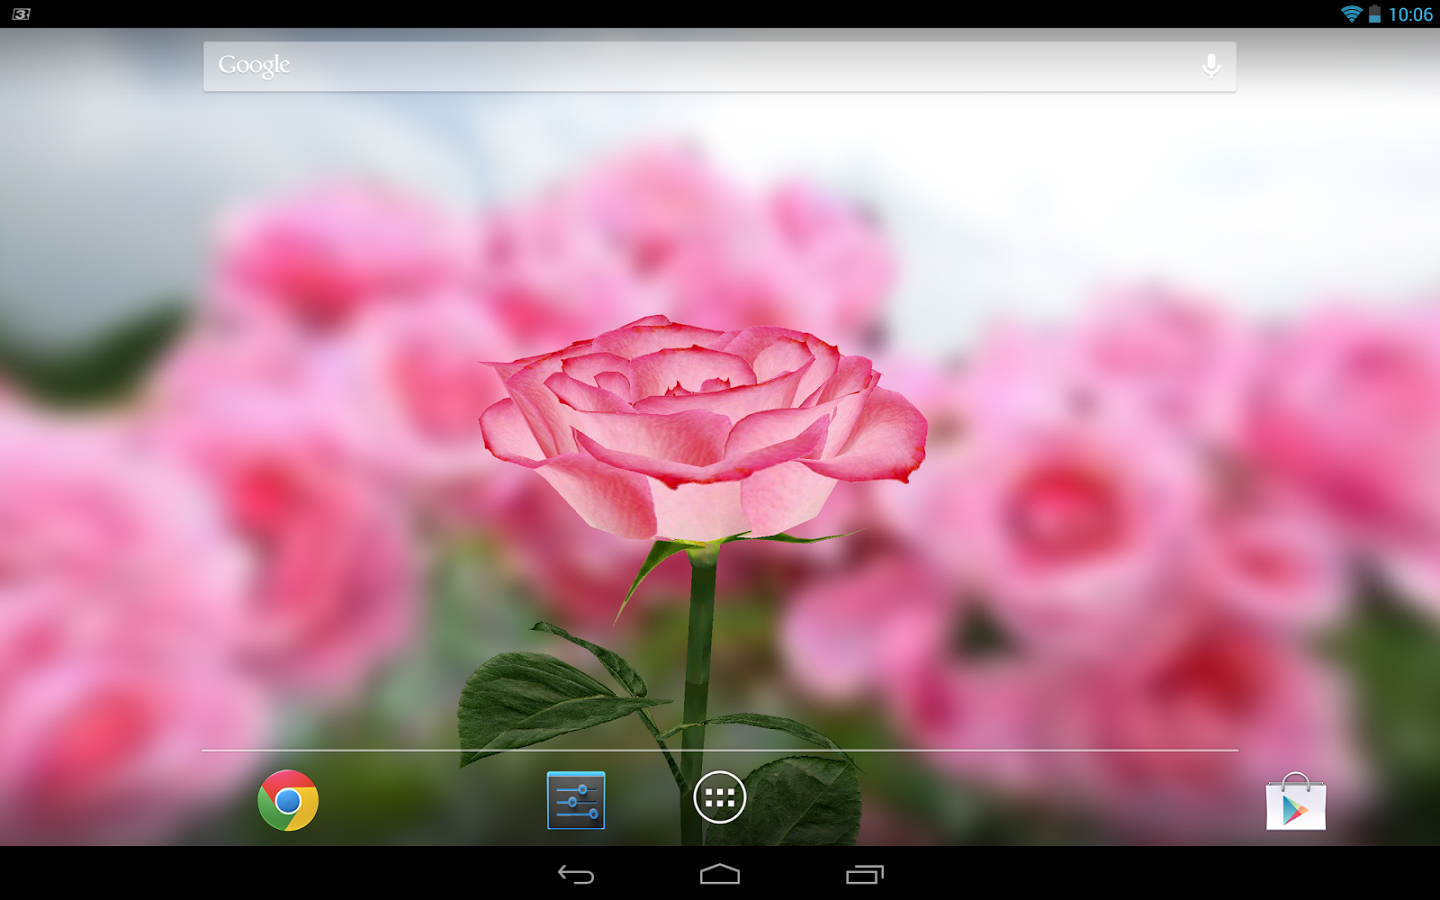 3D Rose Live Wallpaper   Android Apps on Google Play 1440x900